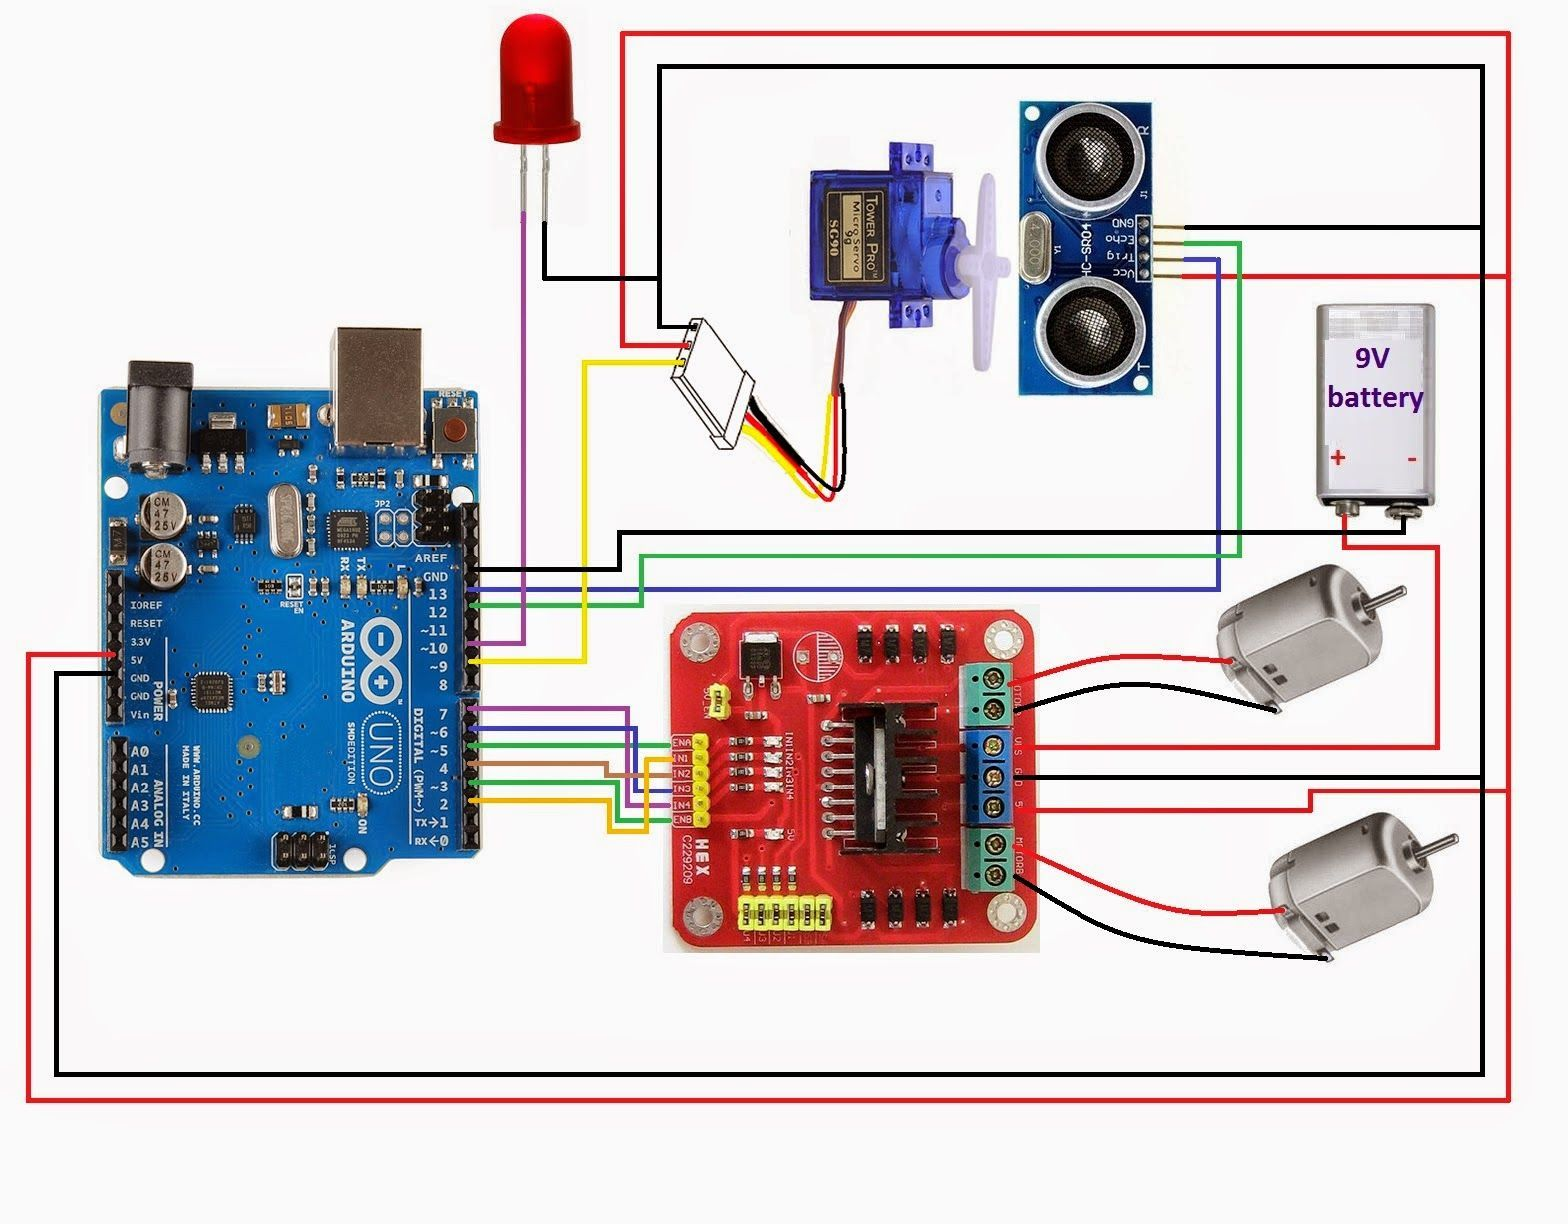 Arduino L298 Hcsr04 Radio Control In 2019 Pinterest Fm Transmitter Circuit Using Transistors Gadgetronicx Make A Robot Projects Rc